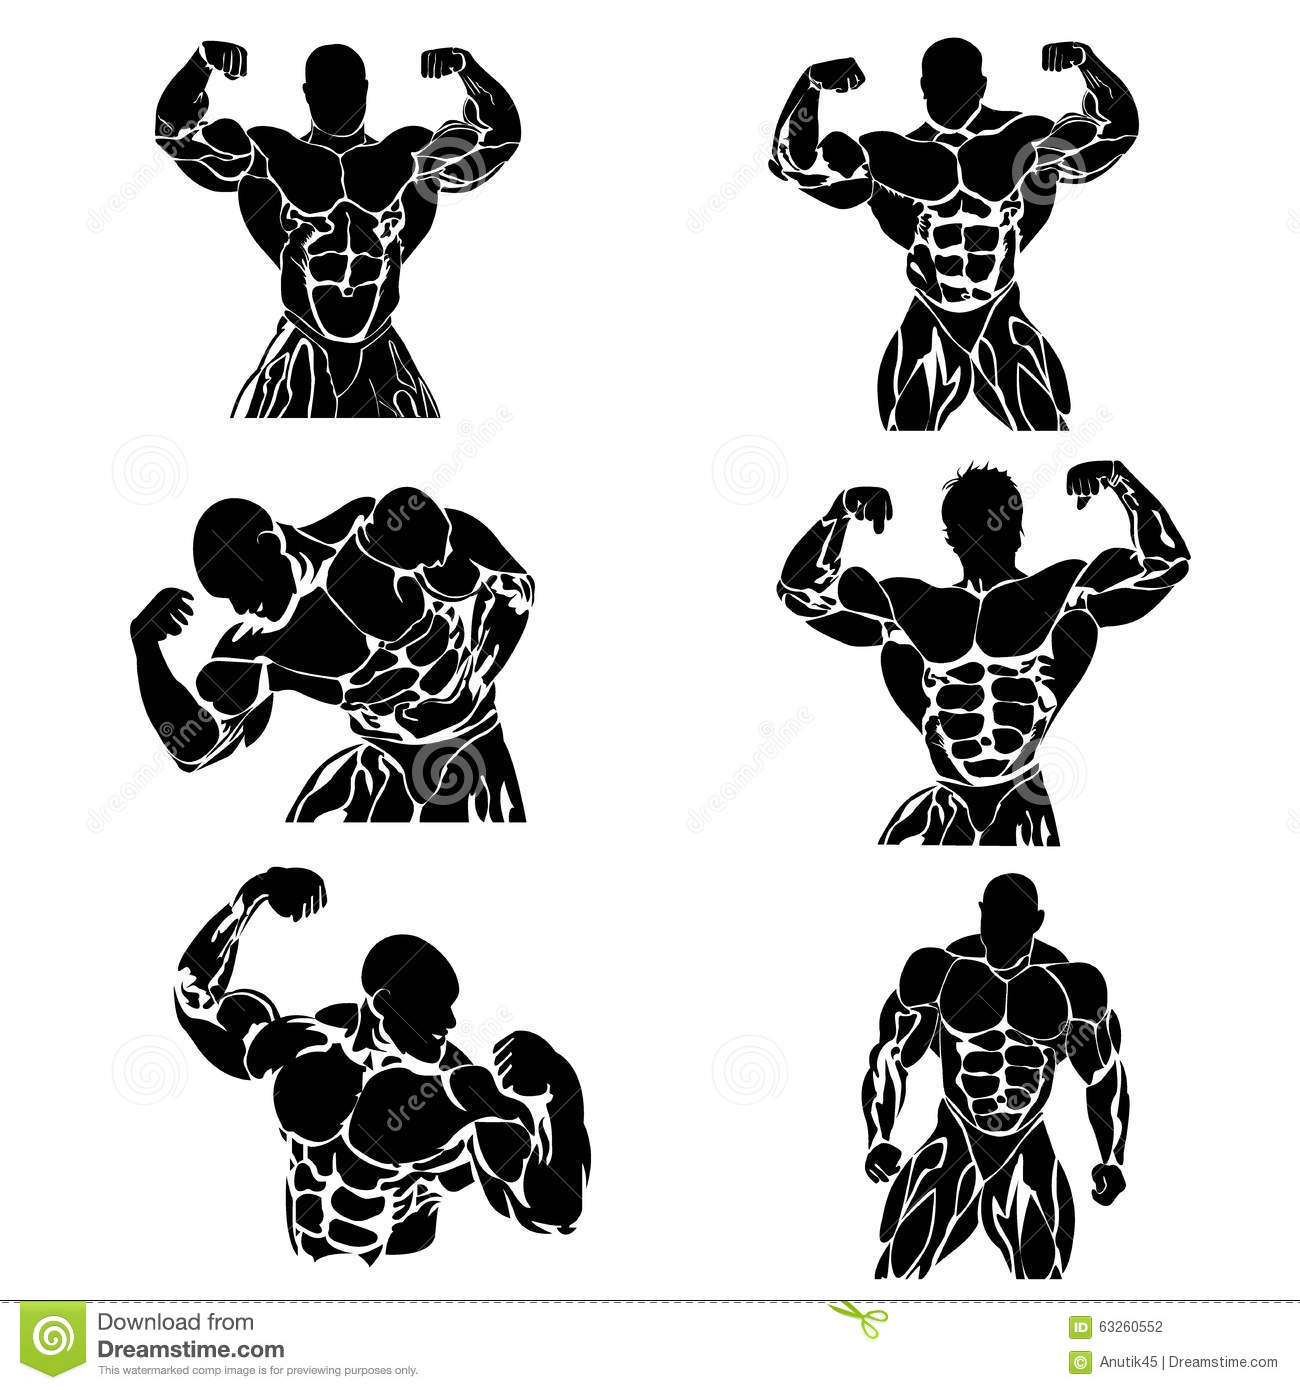 People With Different Body Mass Cartoon Vector